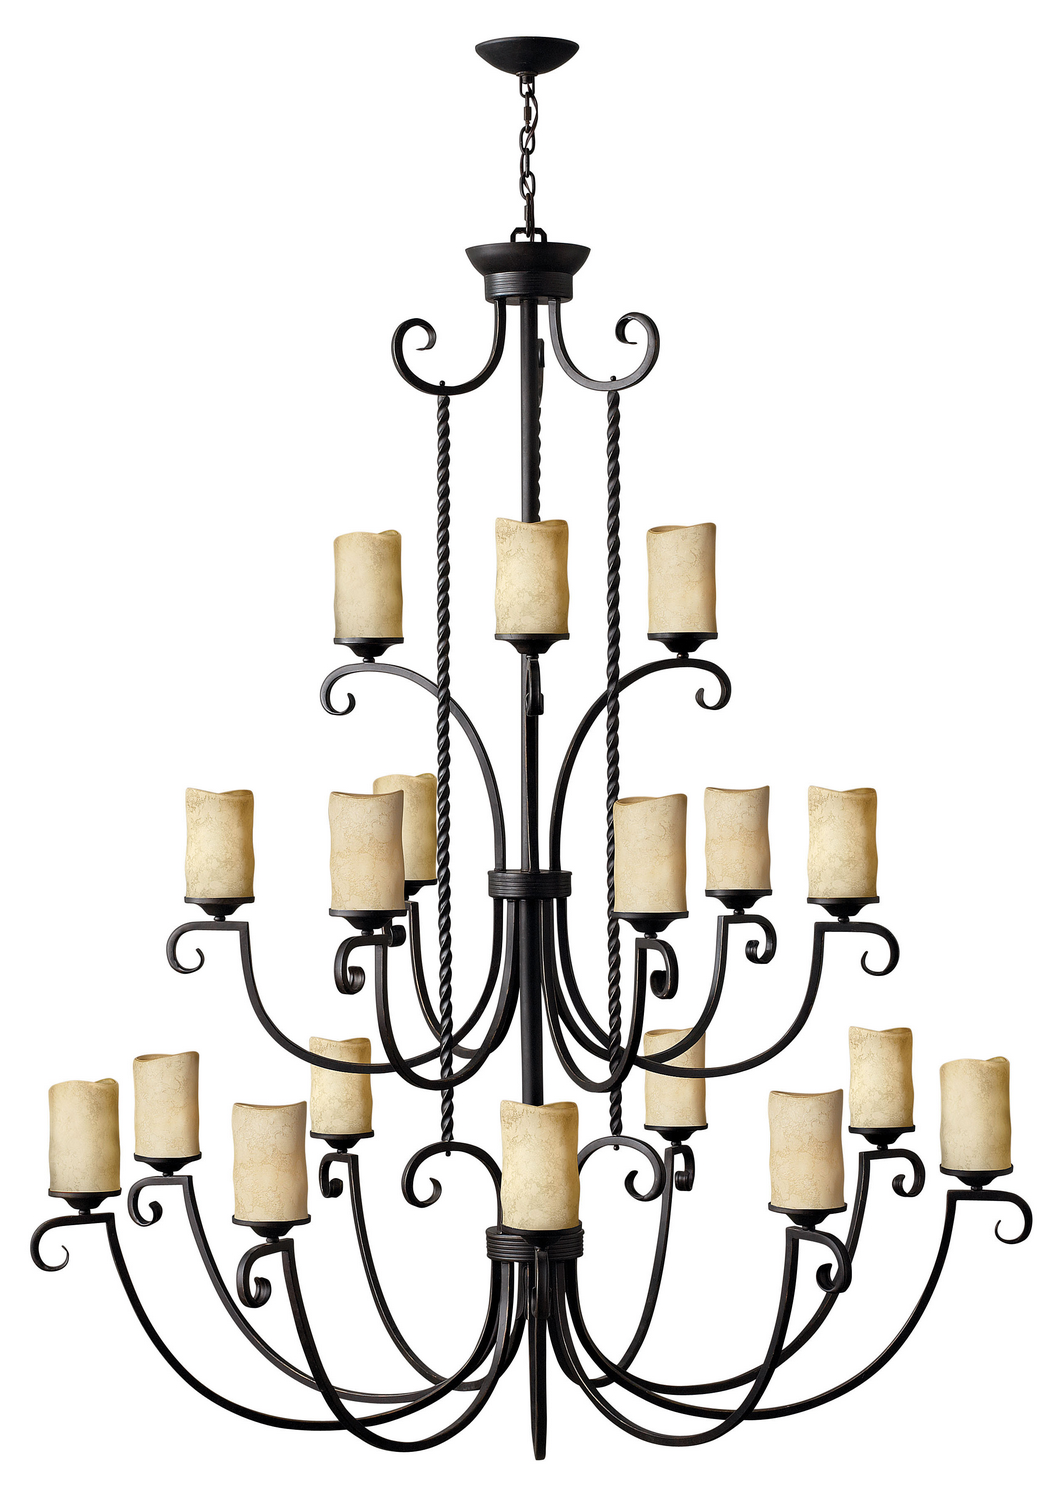 18 Light Foyer Pendant from the Casa collection by Hinkley 4309OL